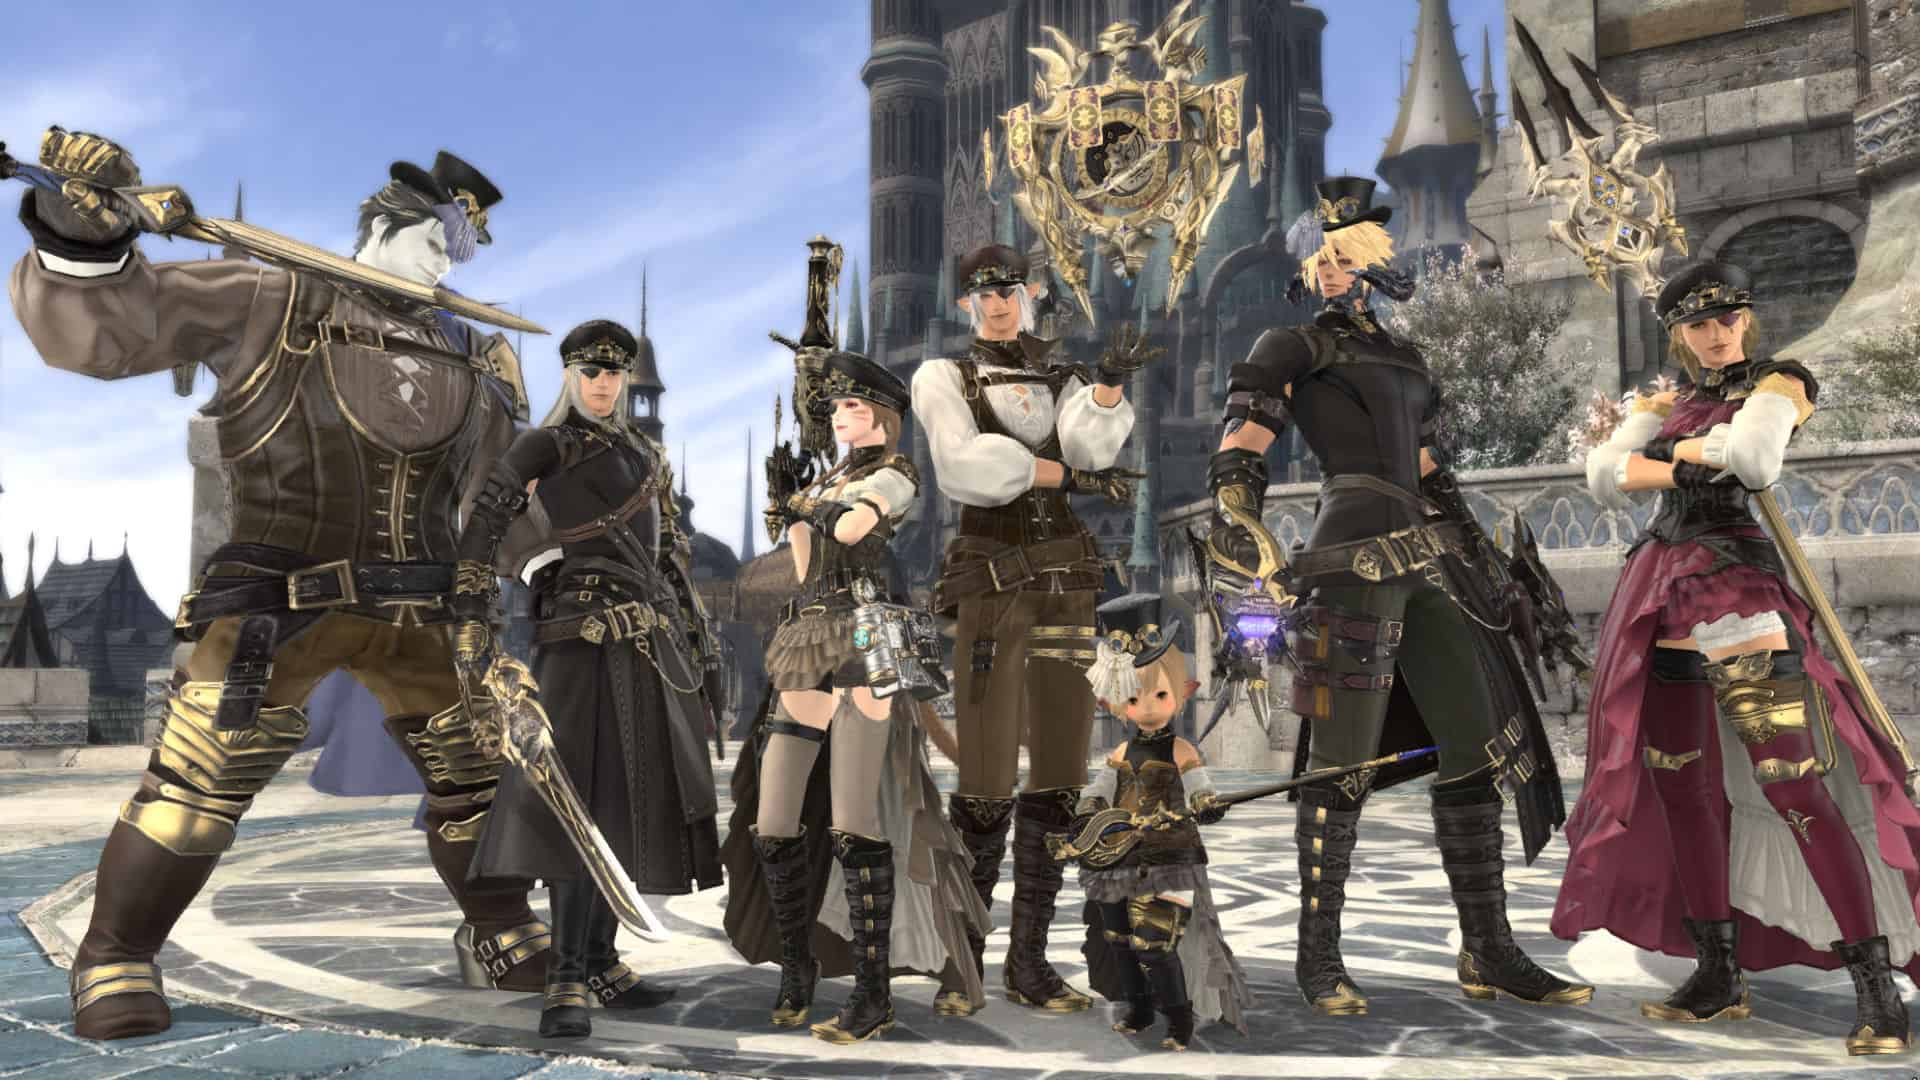 Almost 6000 Accounts Banned In FFXIV For Real Money Trading And Other Illicit Activities